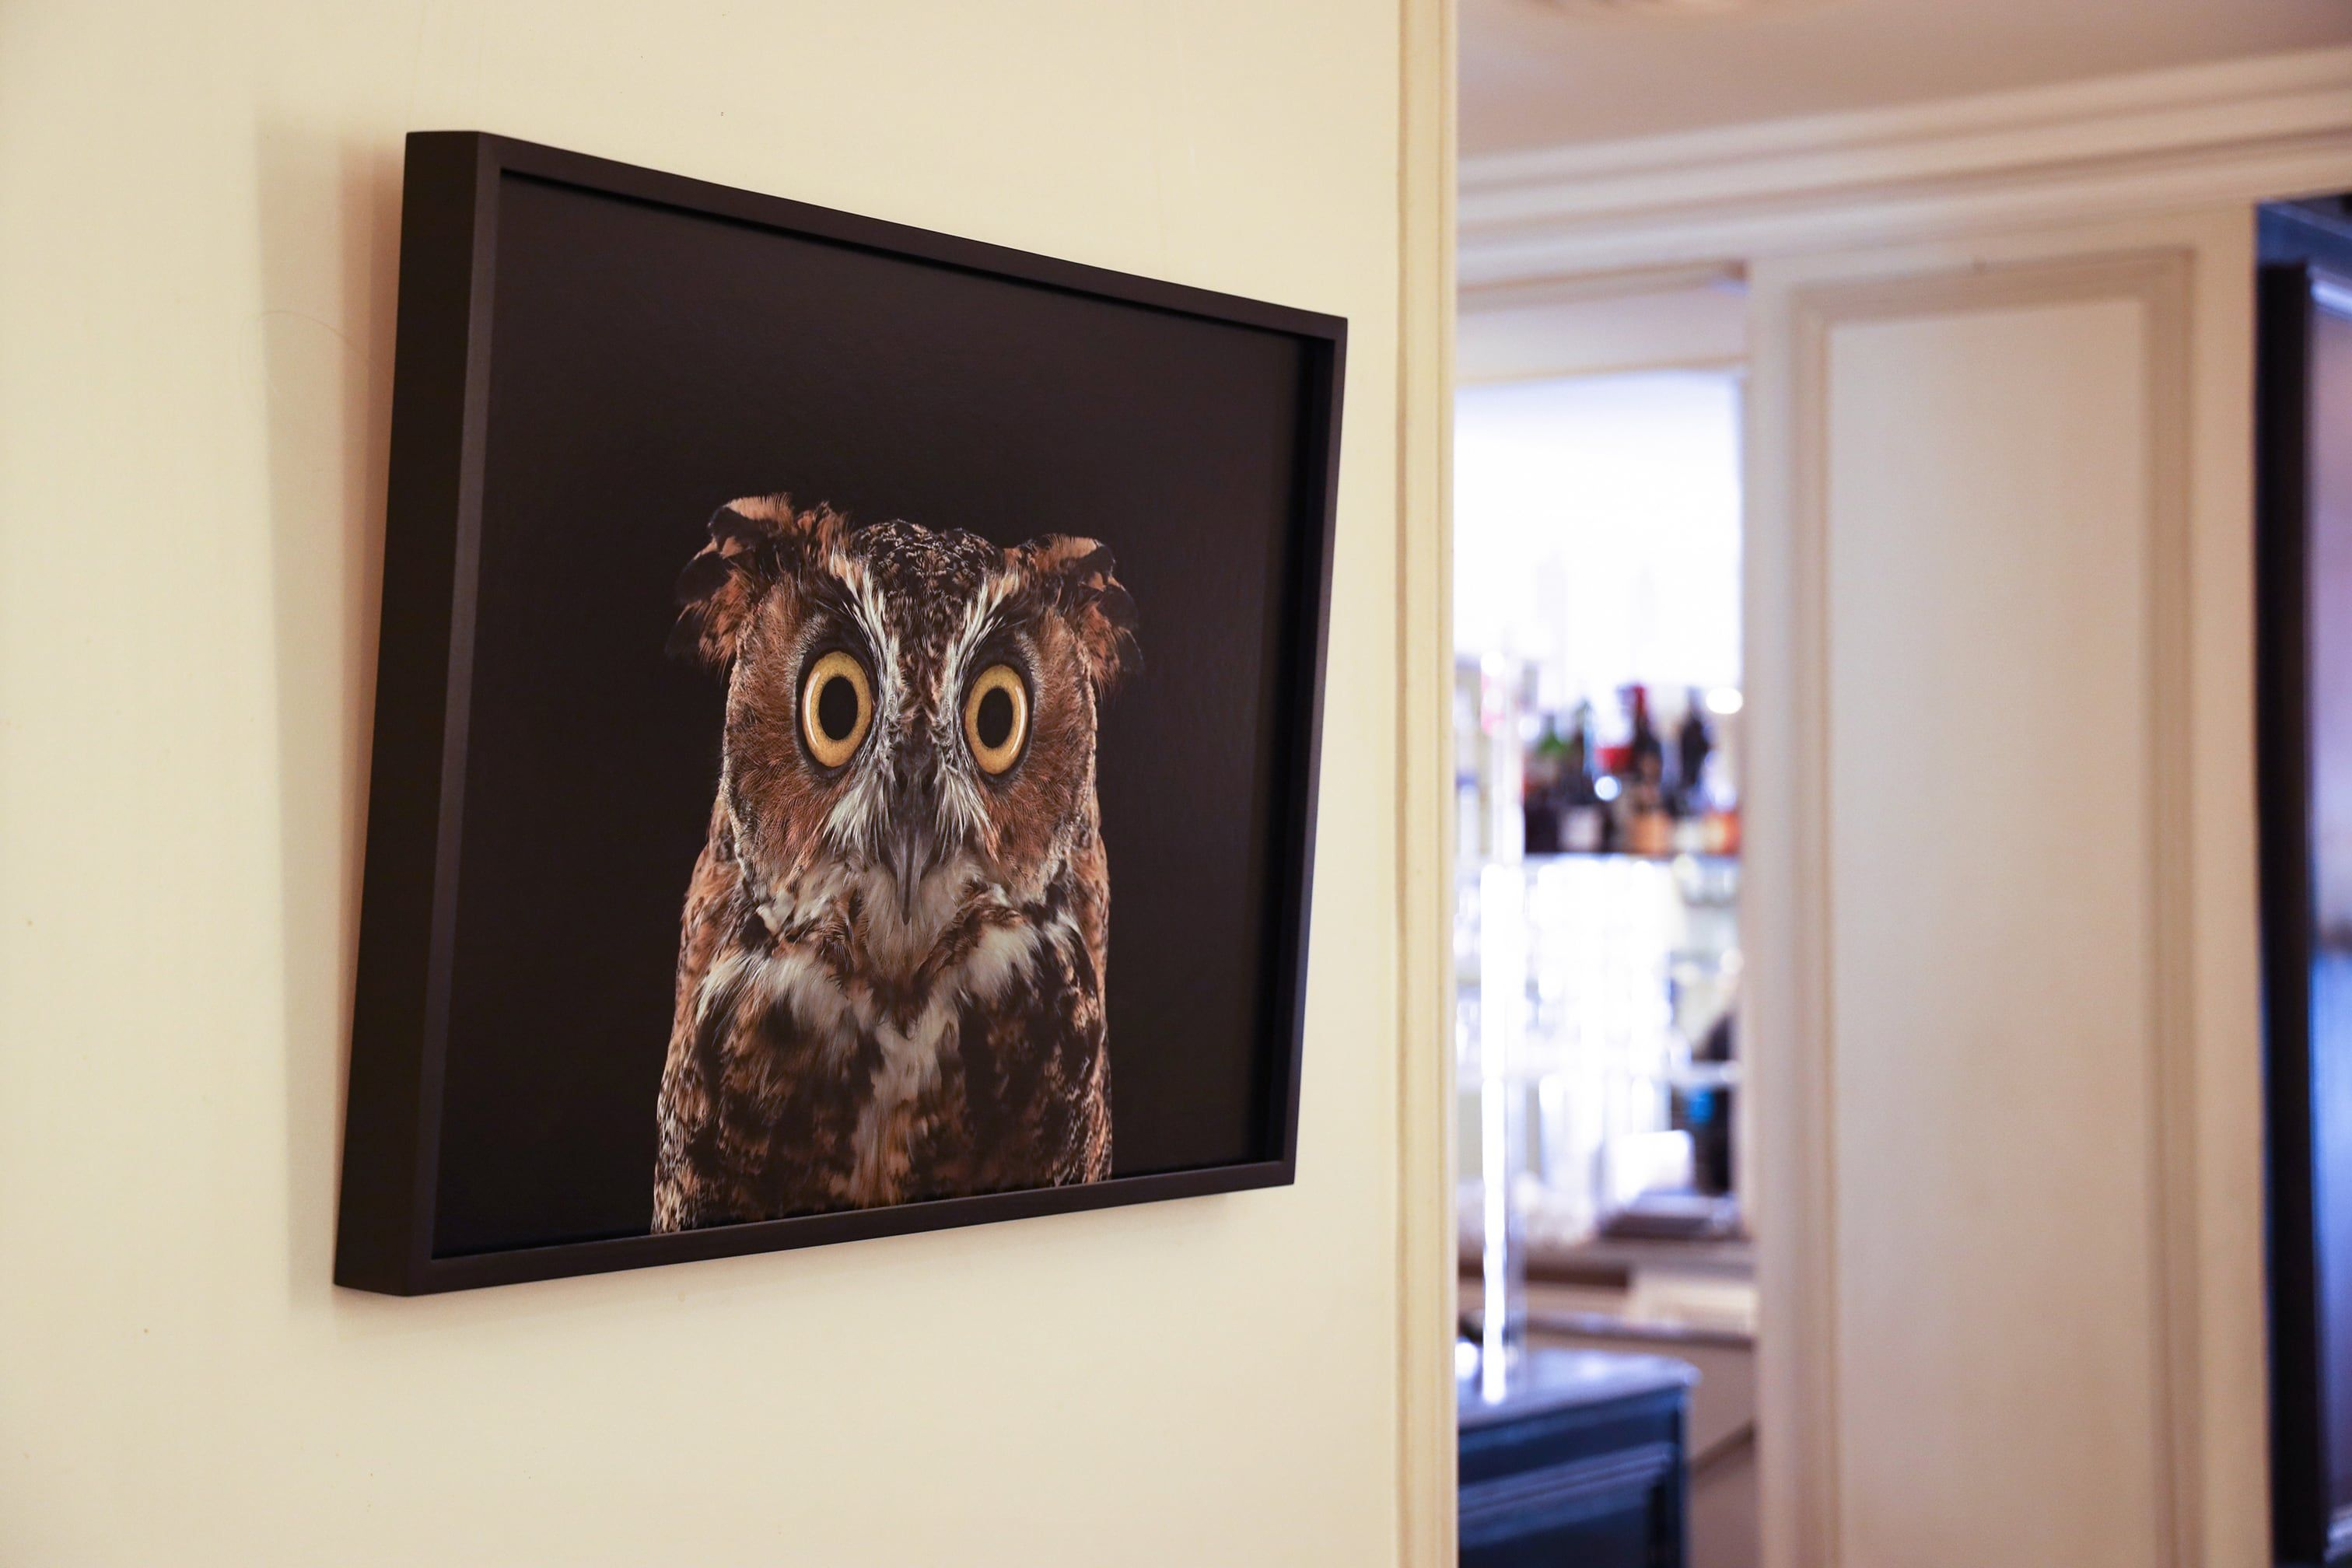 Great Horned Owl #3, Espanola, NM, 2011,Brad Wilson,Photographie, detail 2